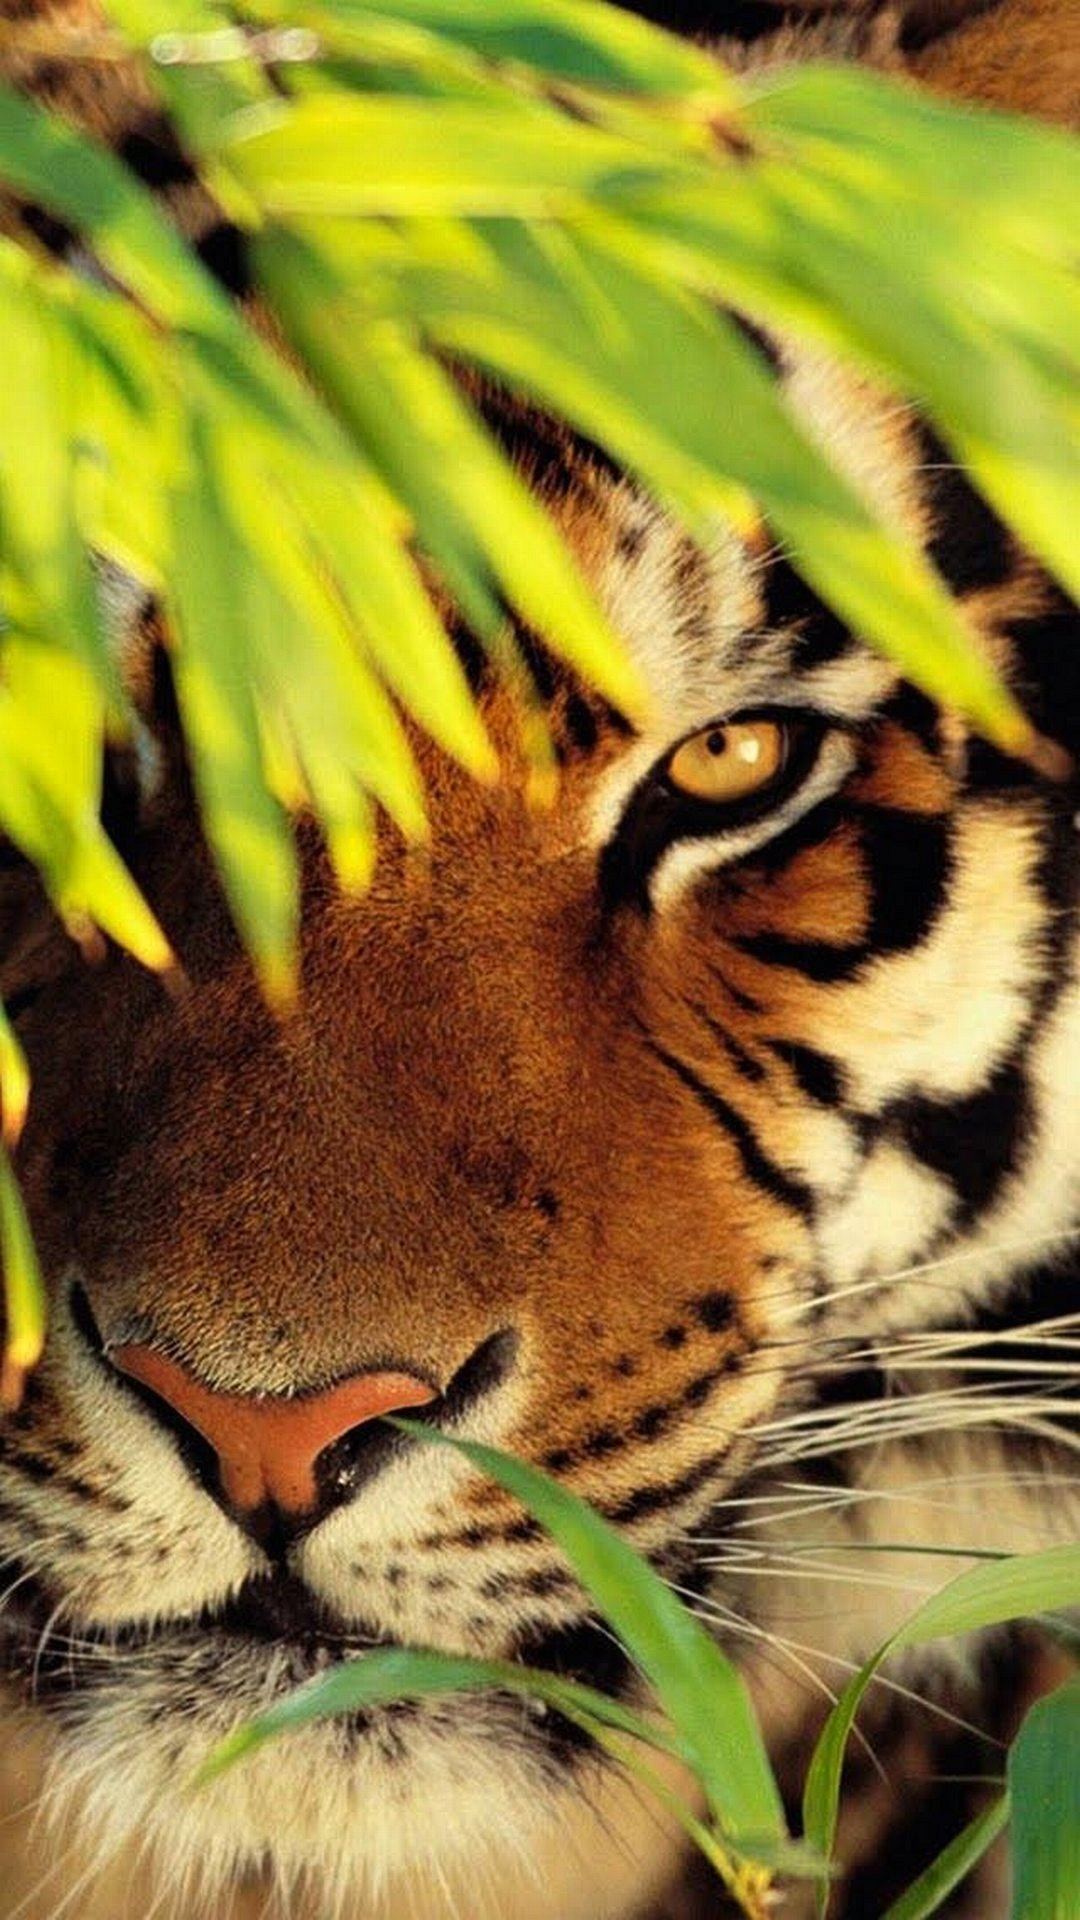 Animals Wallpapers Wallpaper Iphone 7 1080 1920 Full Hd 156